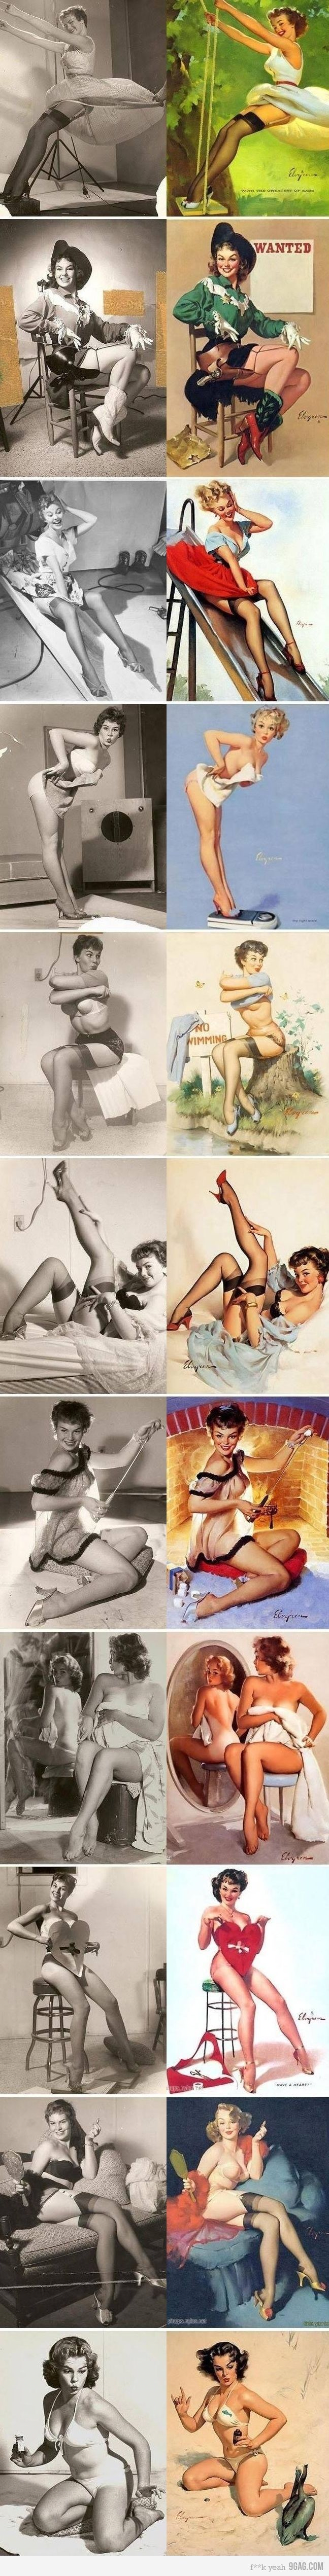 pin up girls vs real